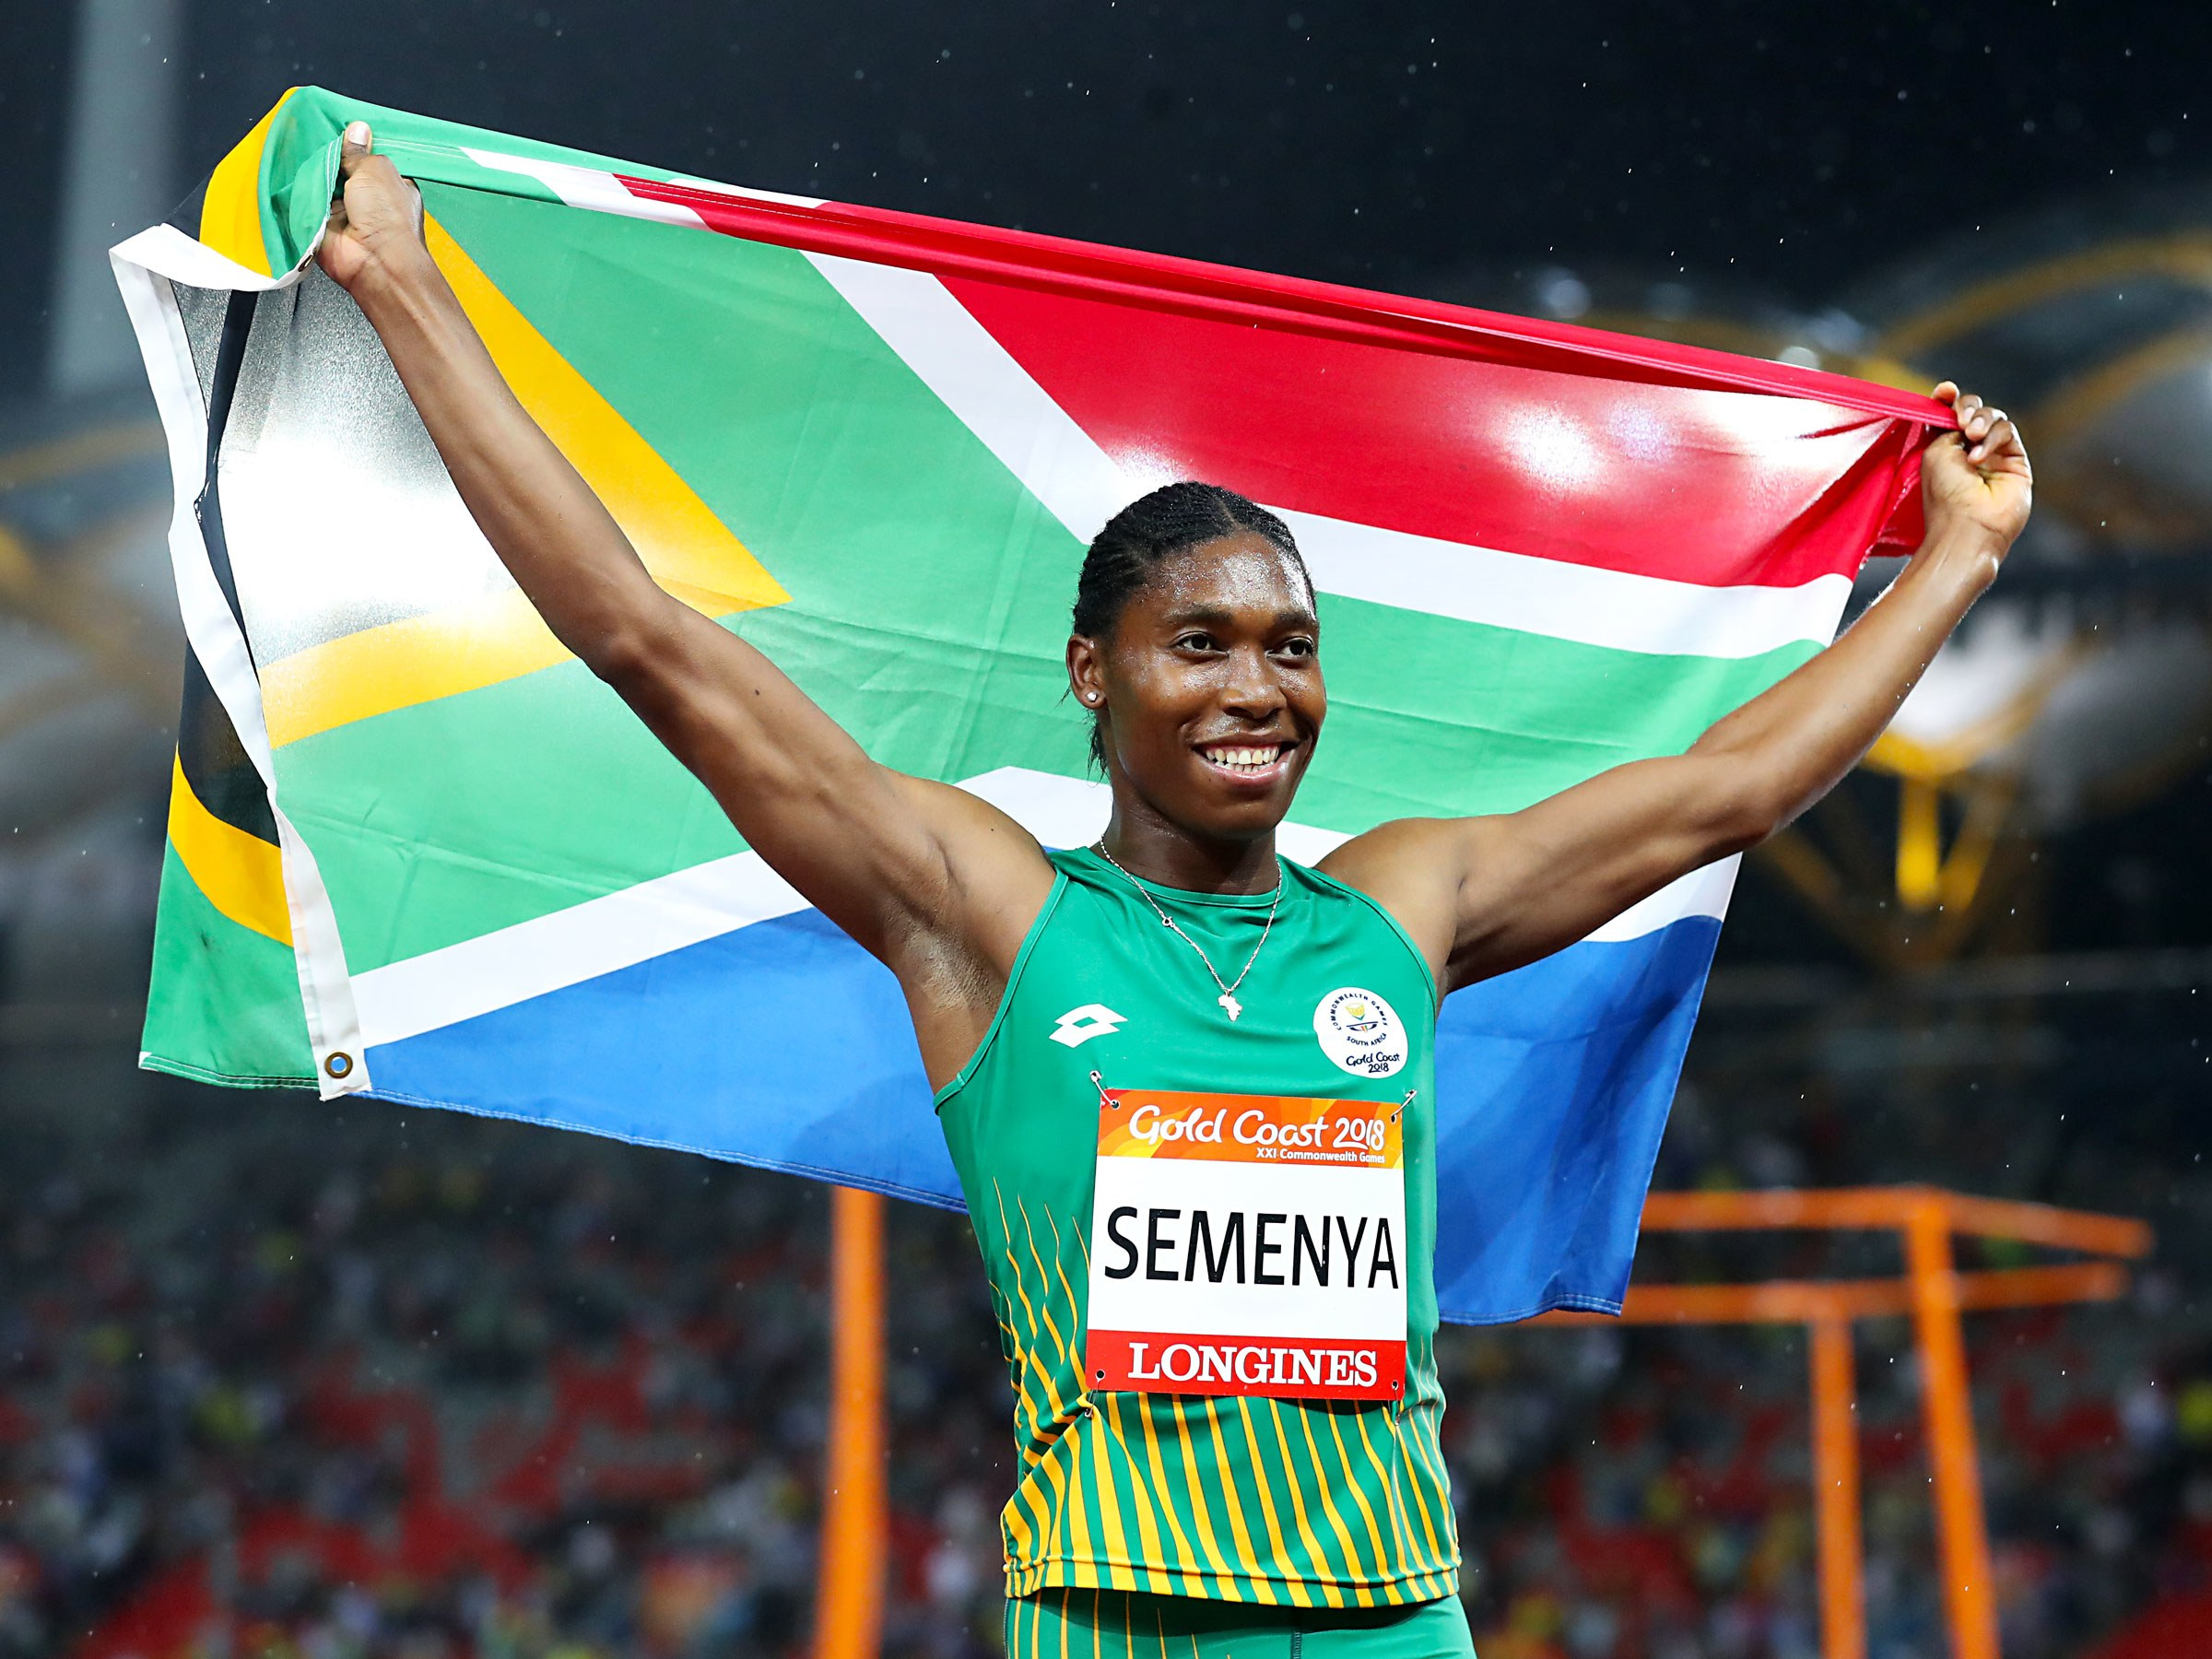 Caster Semenya in Preparation Squad for Olympic Games - Sports Leo